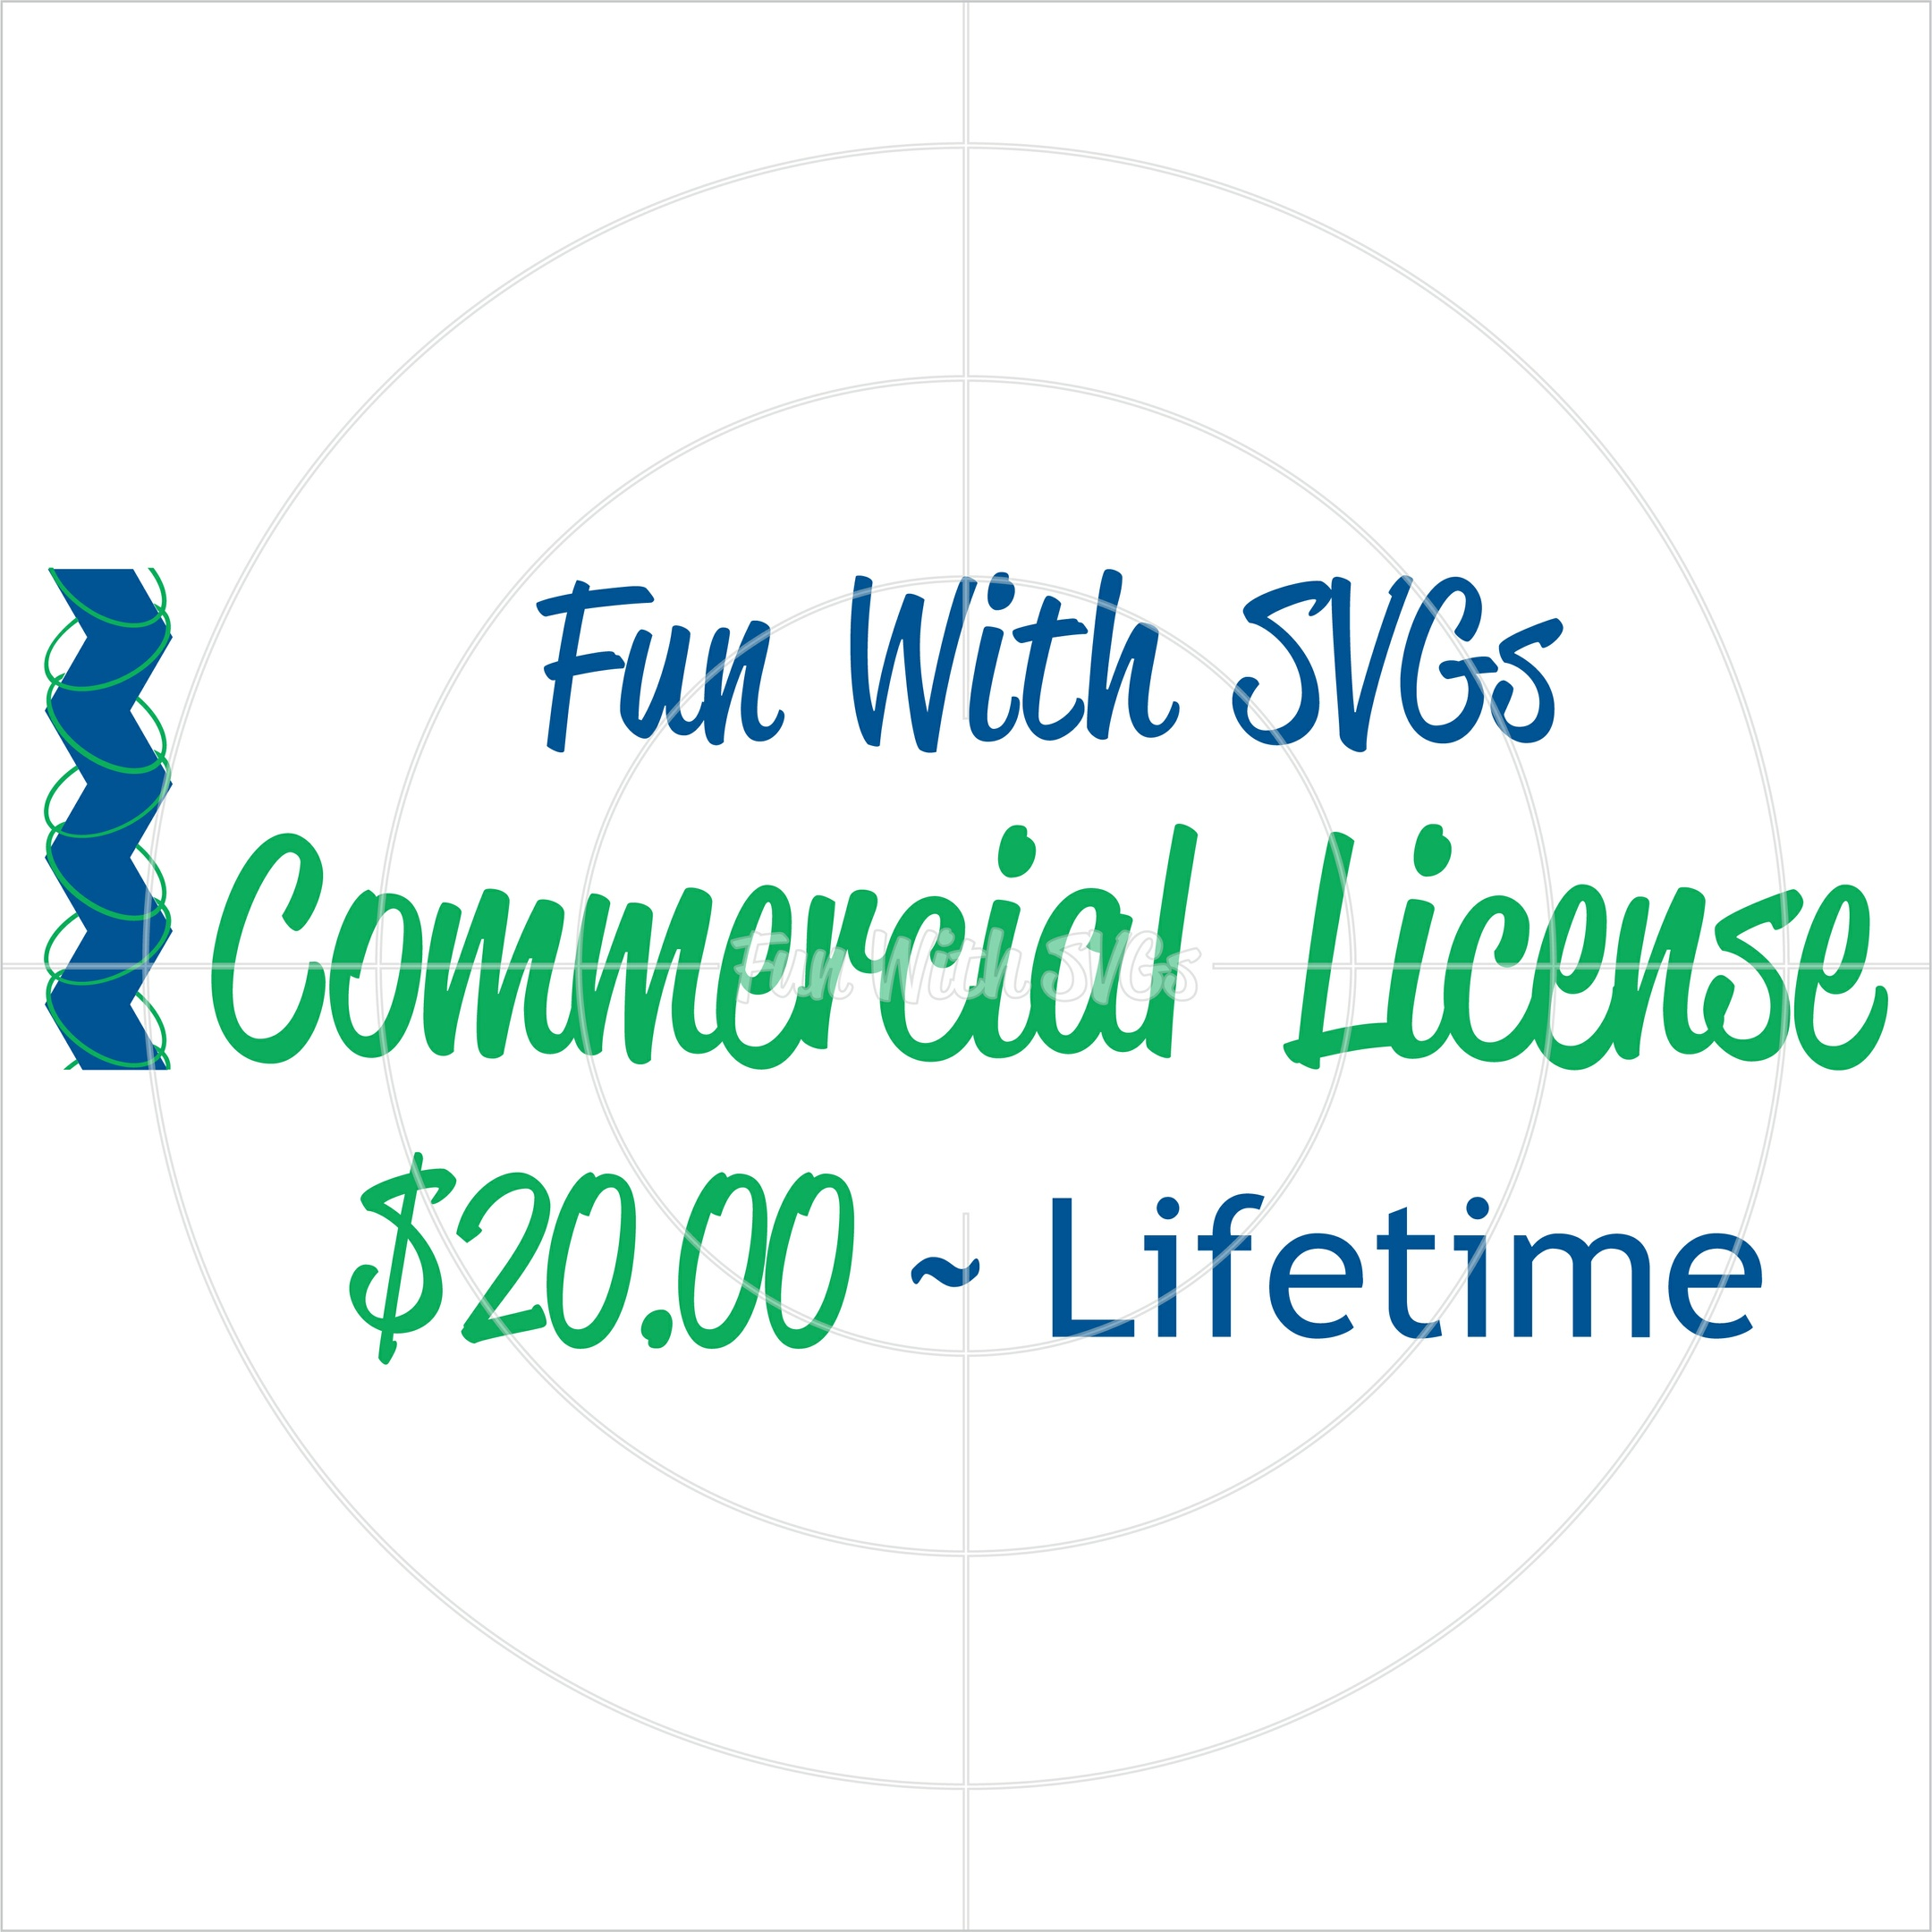 Lifetime Commercial License - Fun With SVGs